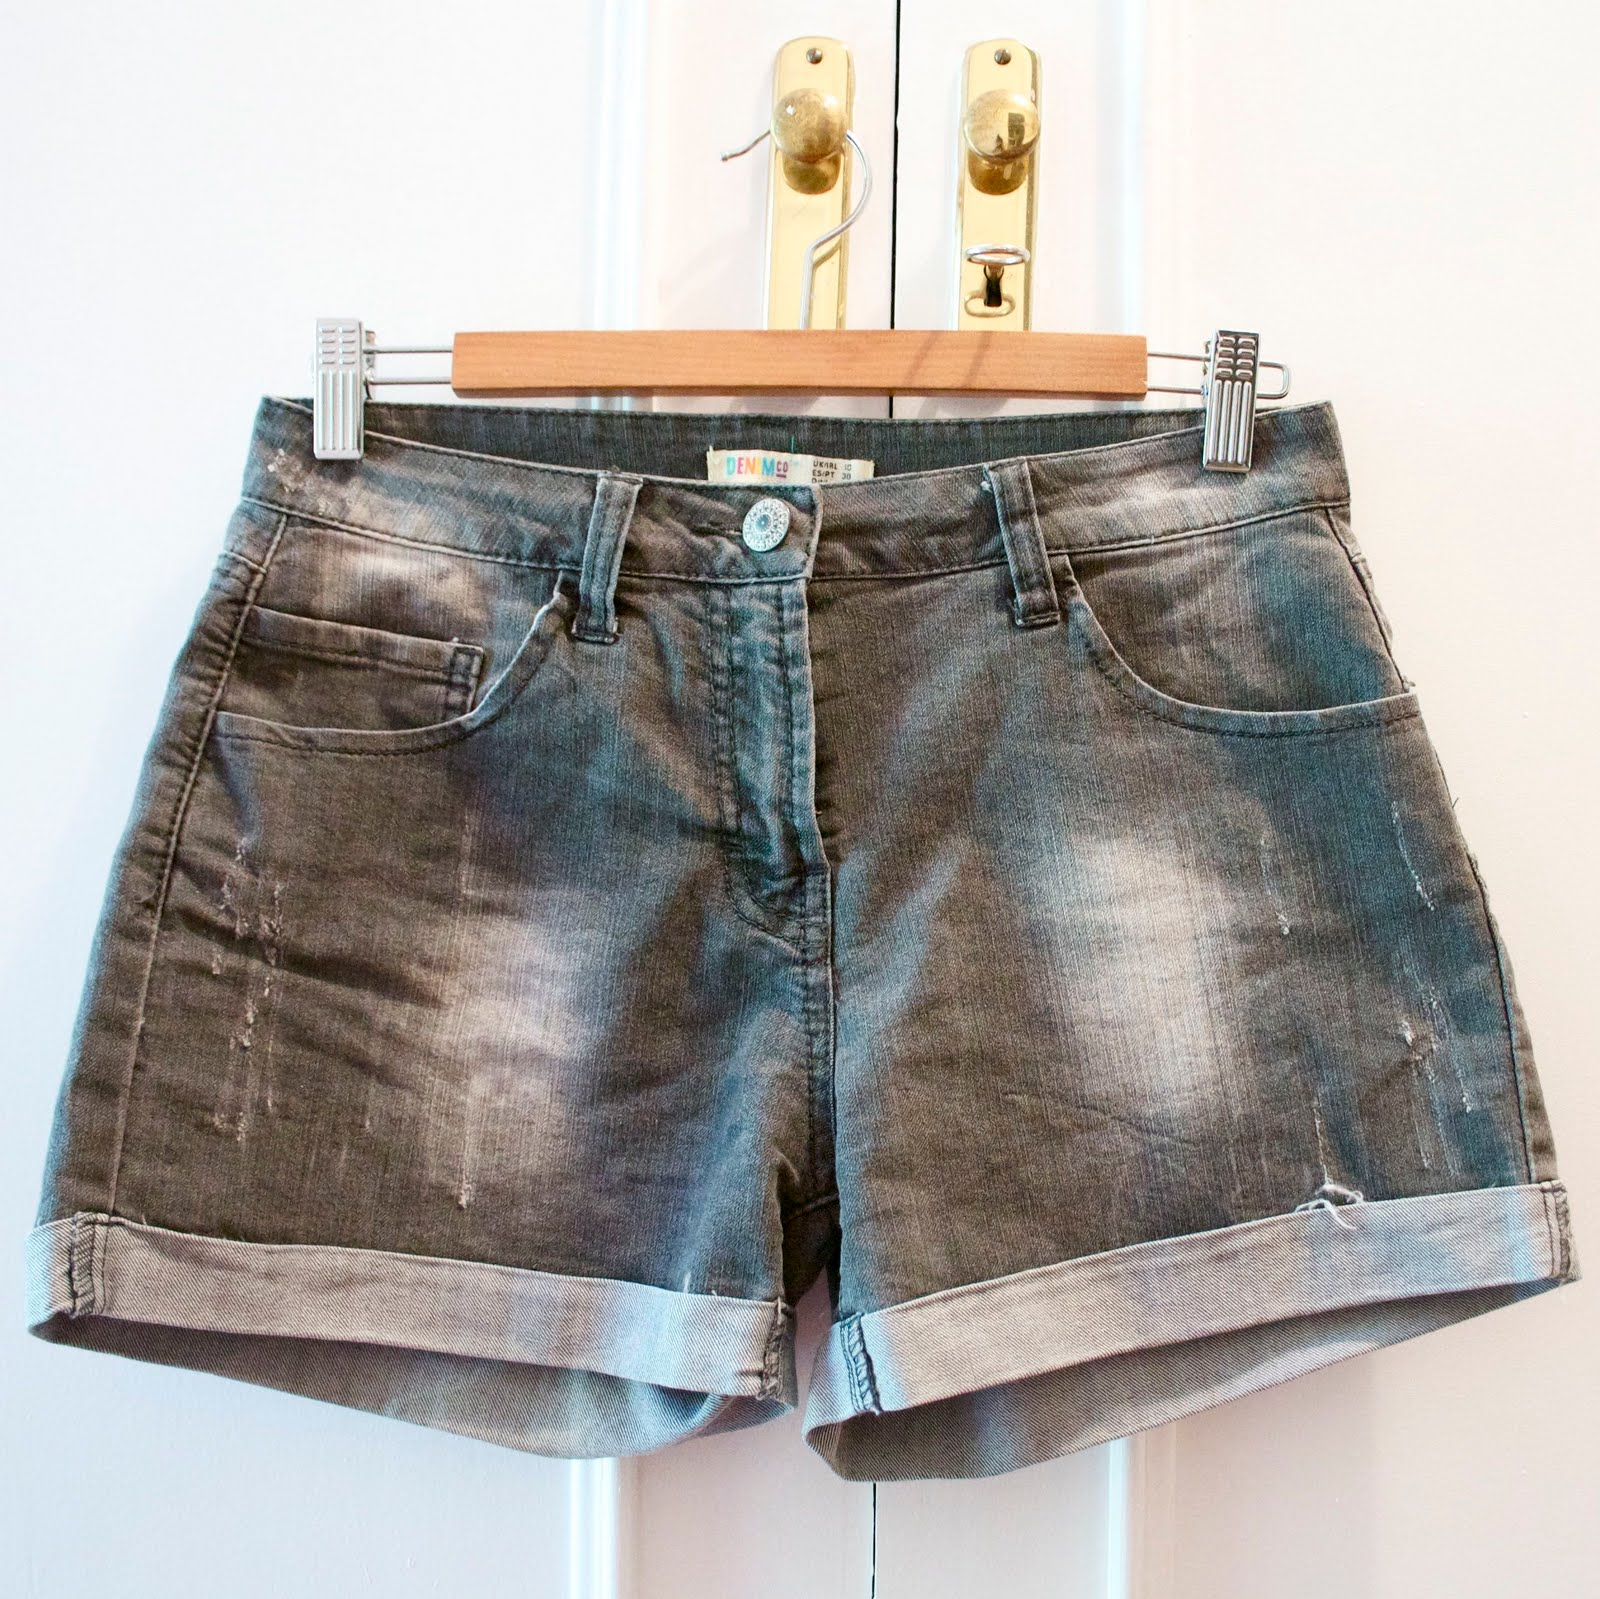 Cómo customizar unos shorts denim-222-crimenesdelamoda